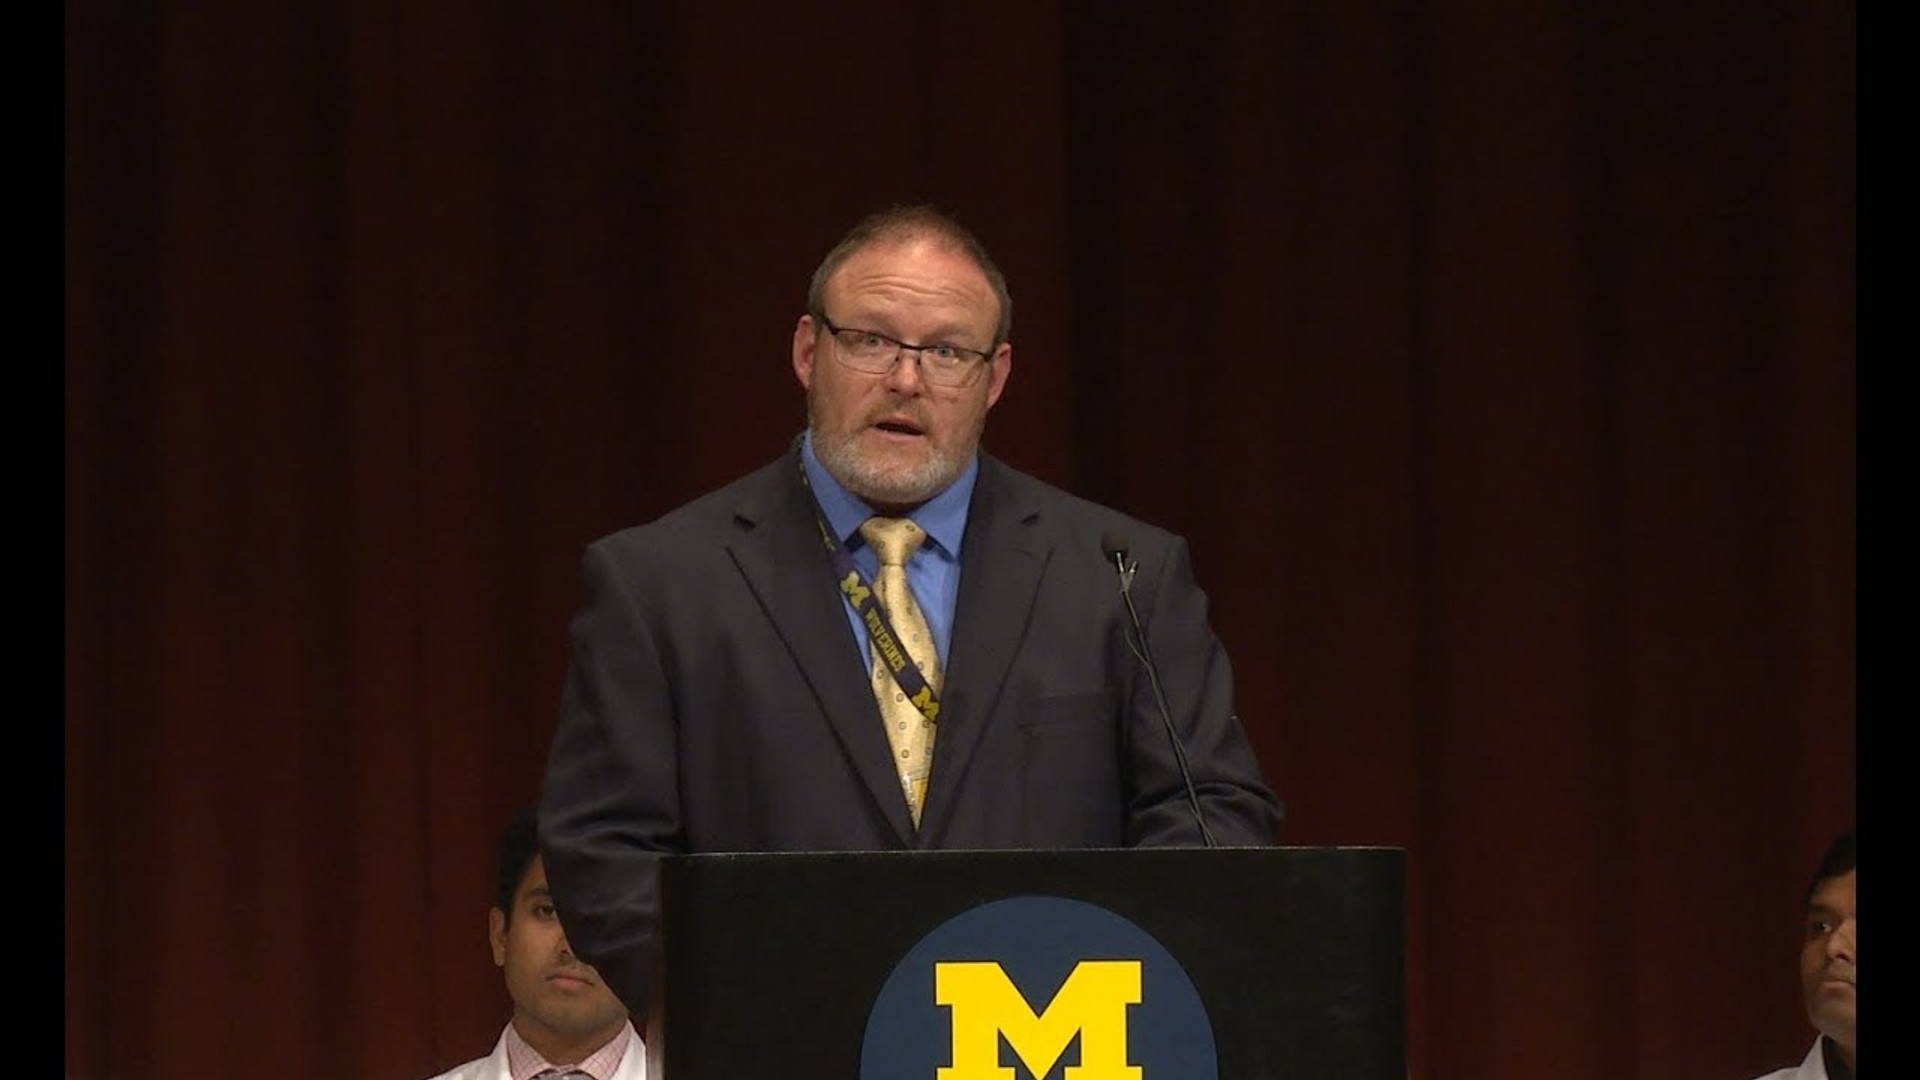 University of Michigan Medical School Anatomical Donor Ceremony 2019